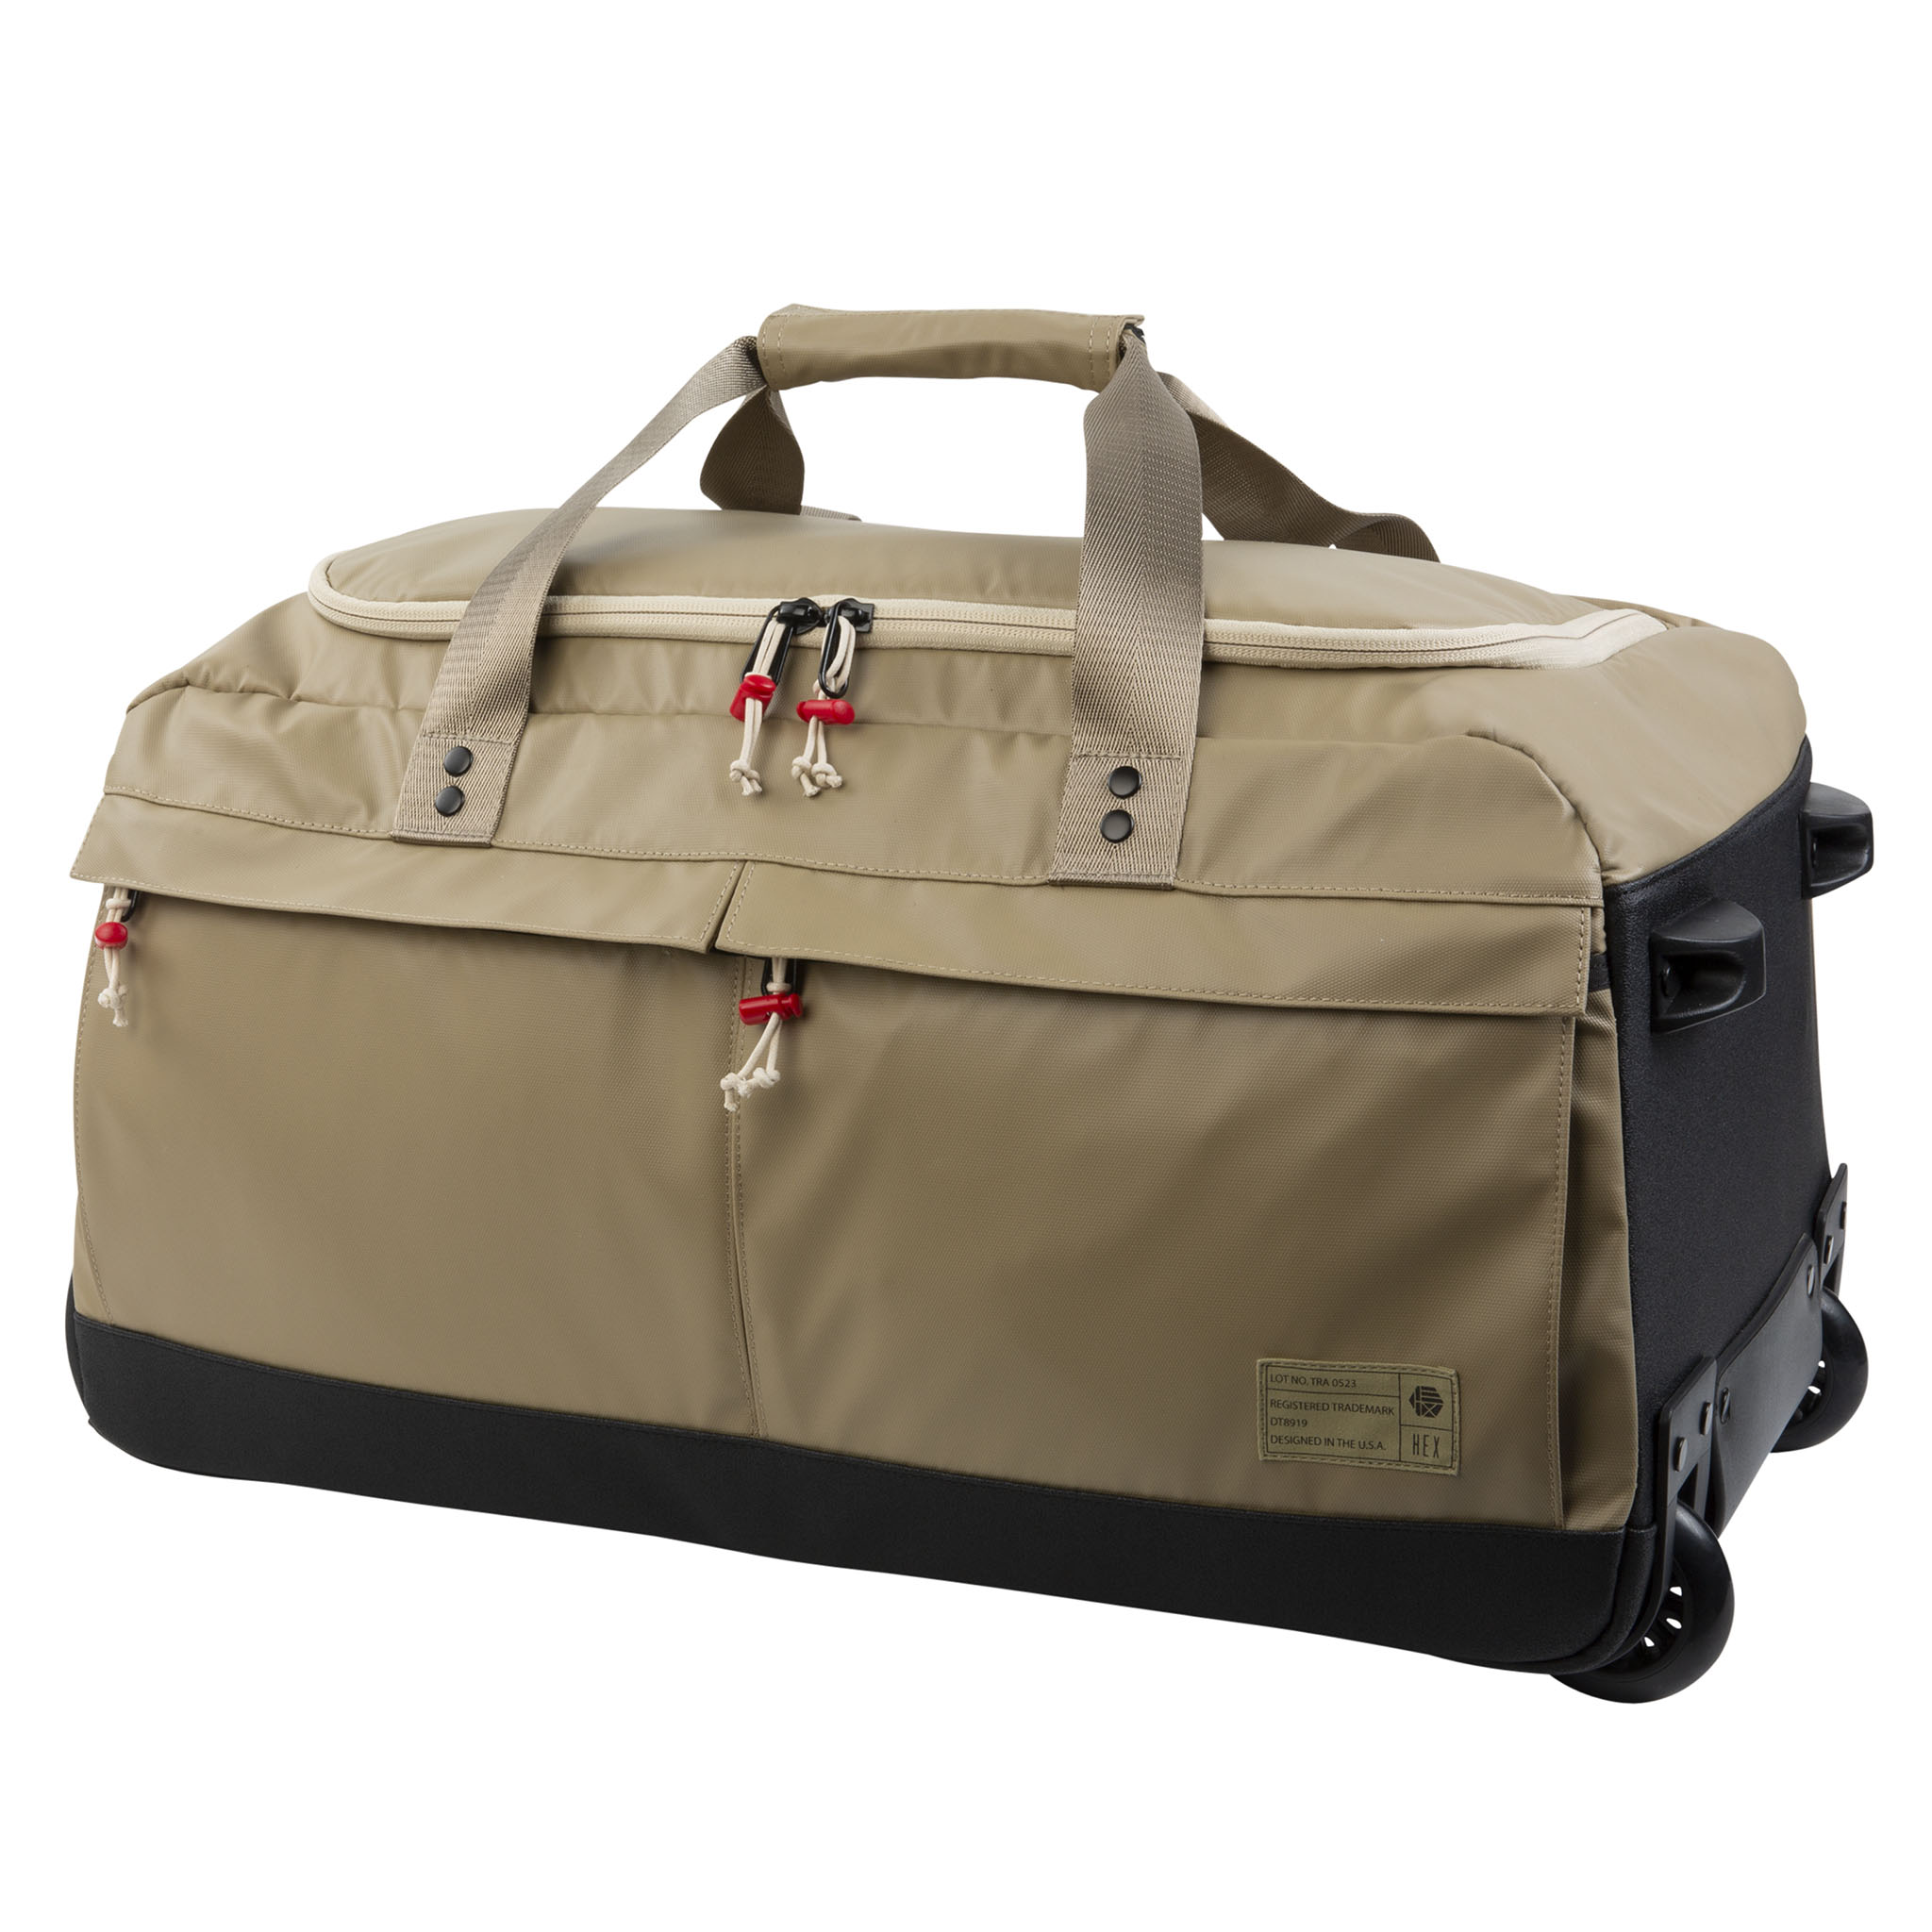 Carry-ons Airline Stewardess Travel Suitcase Rolling Luggage Captain Airborne Chassis Box Computer Trolley Case Spinner 18boarding Boxes Invigorating Blood Circulation And Stopping Pains